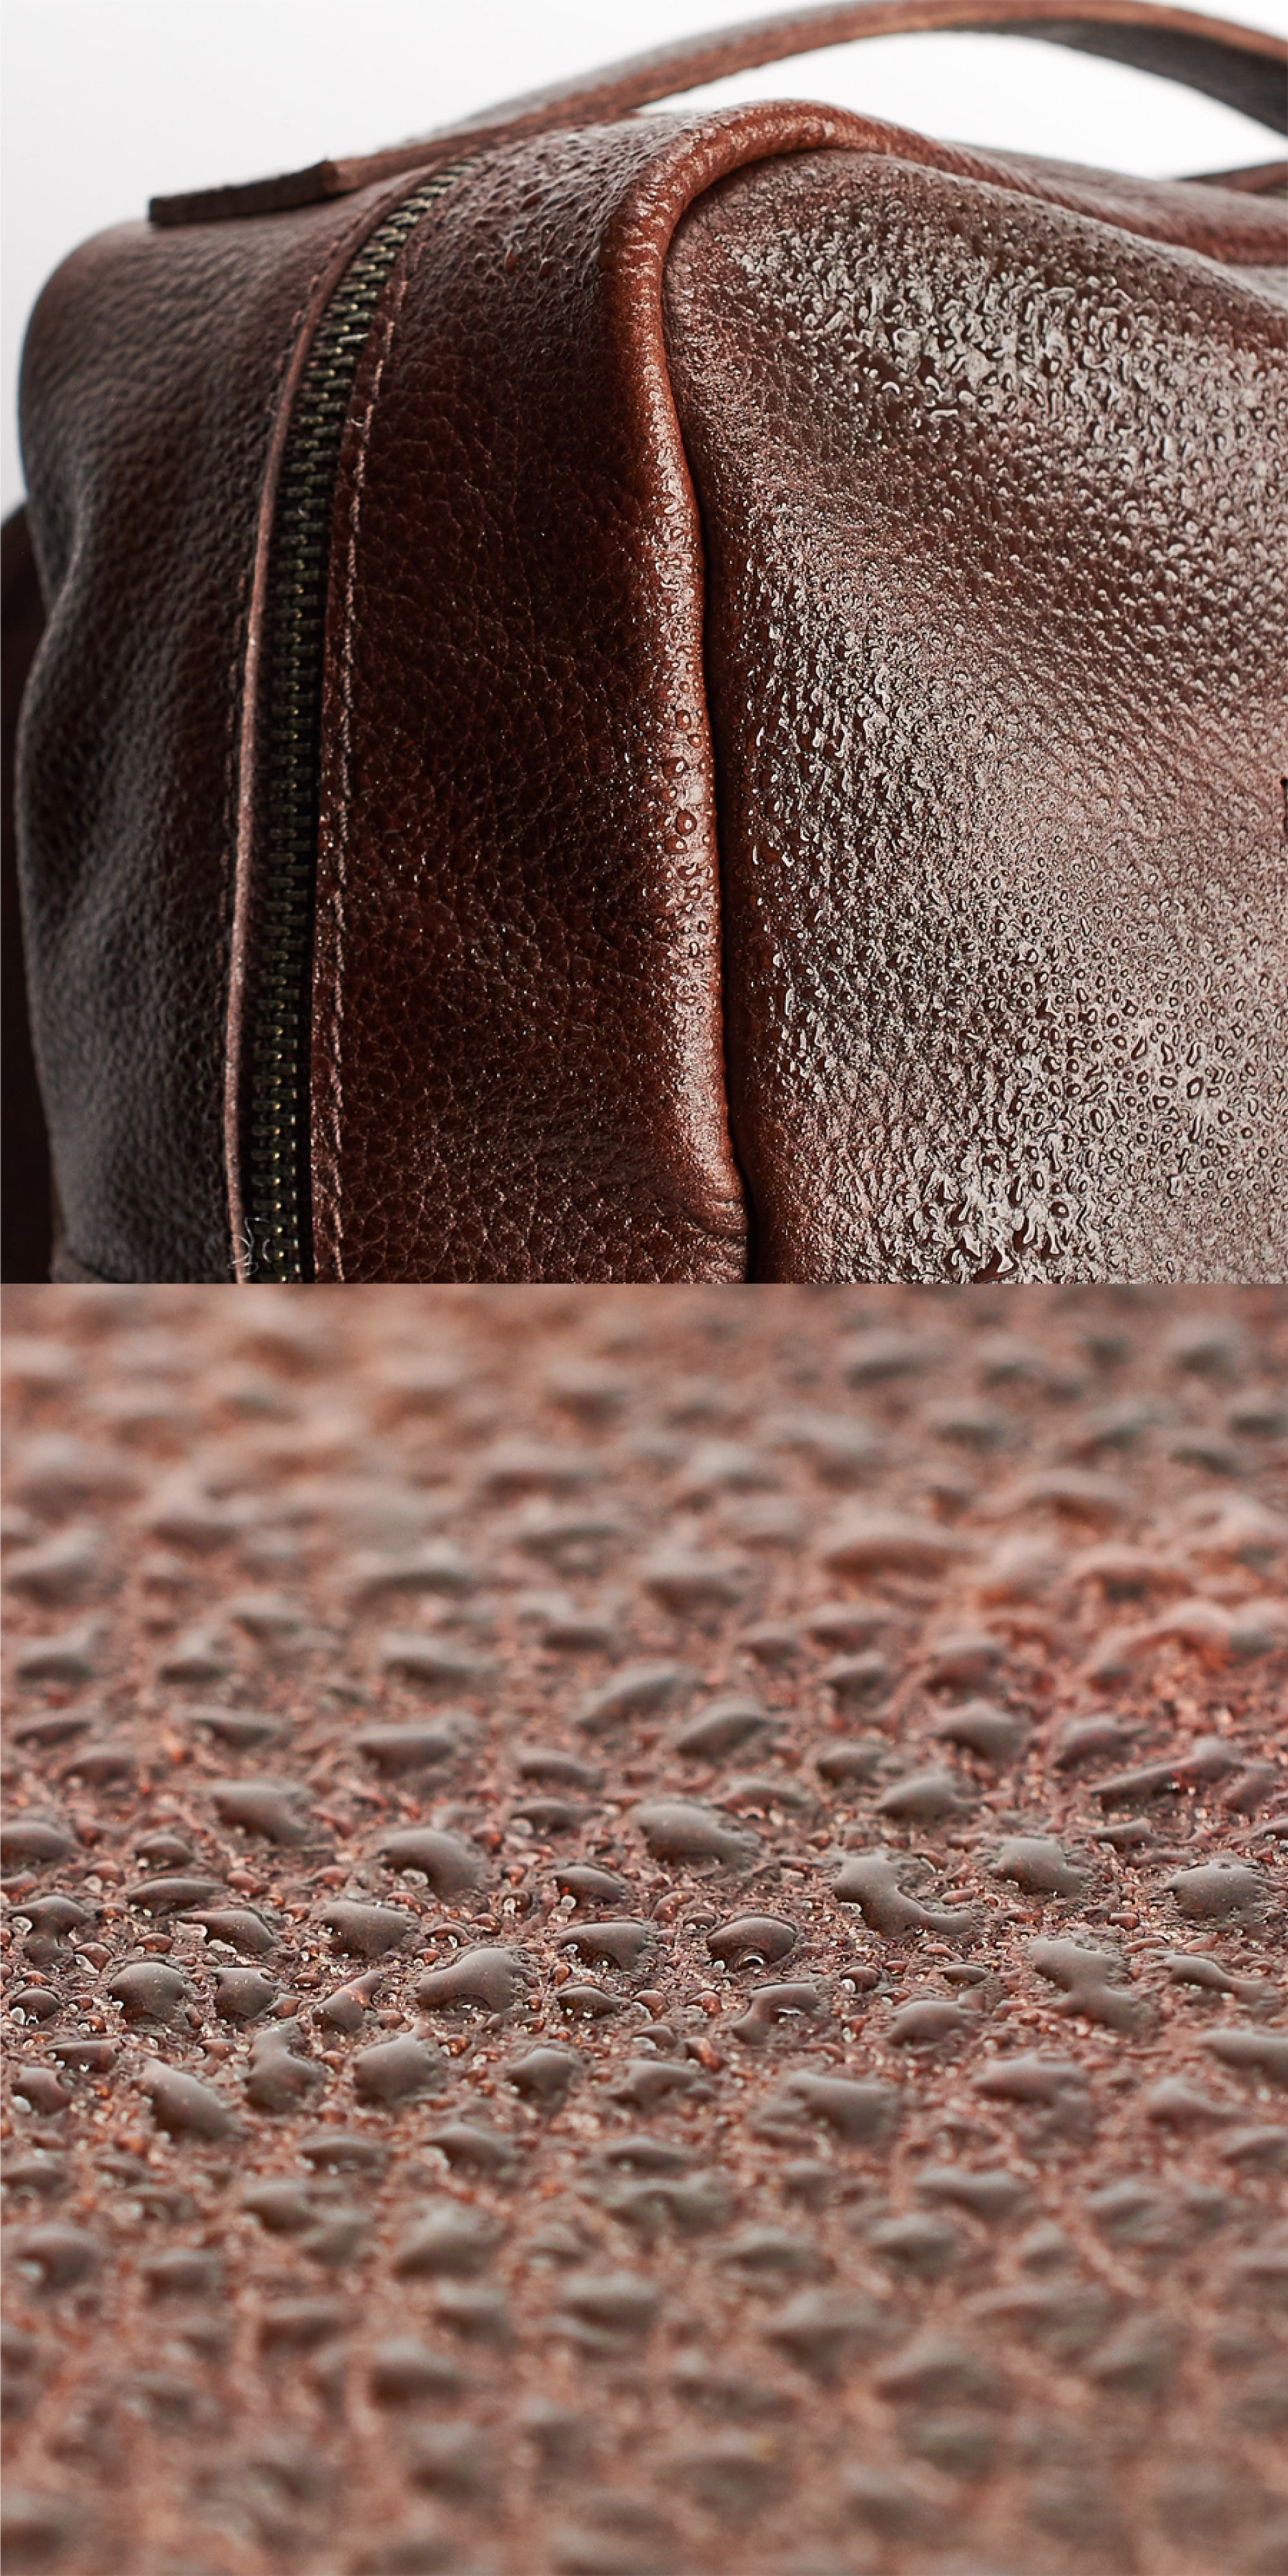 hydrofugated leather